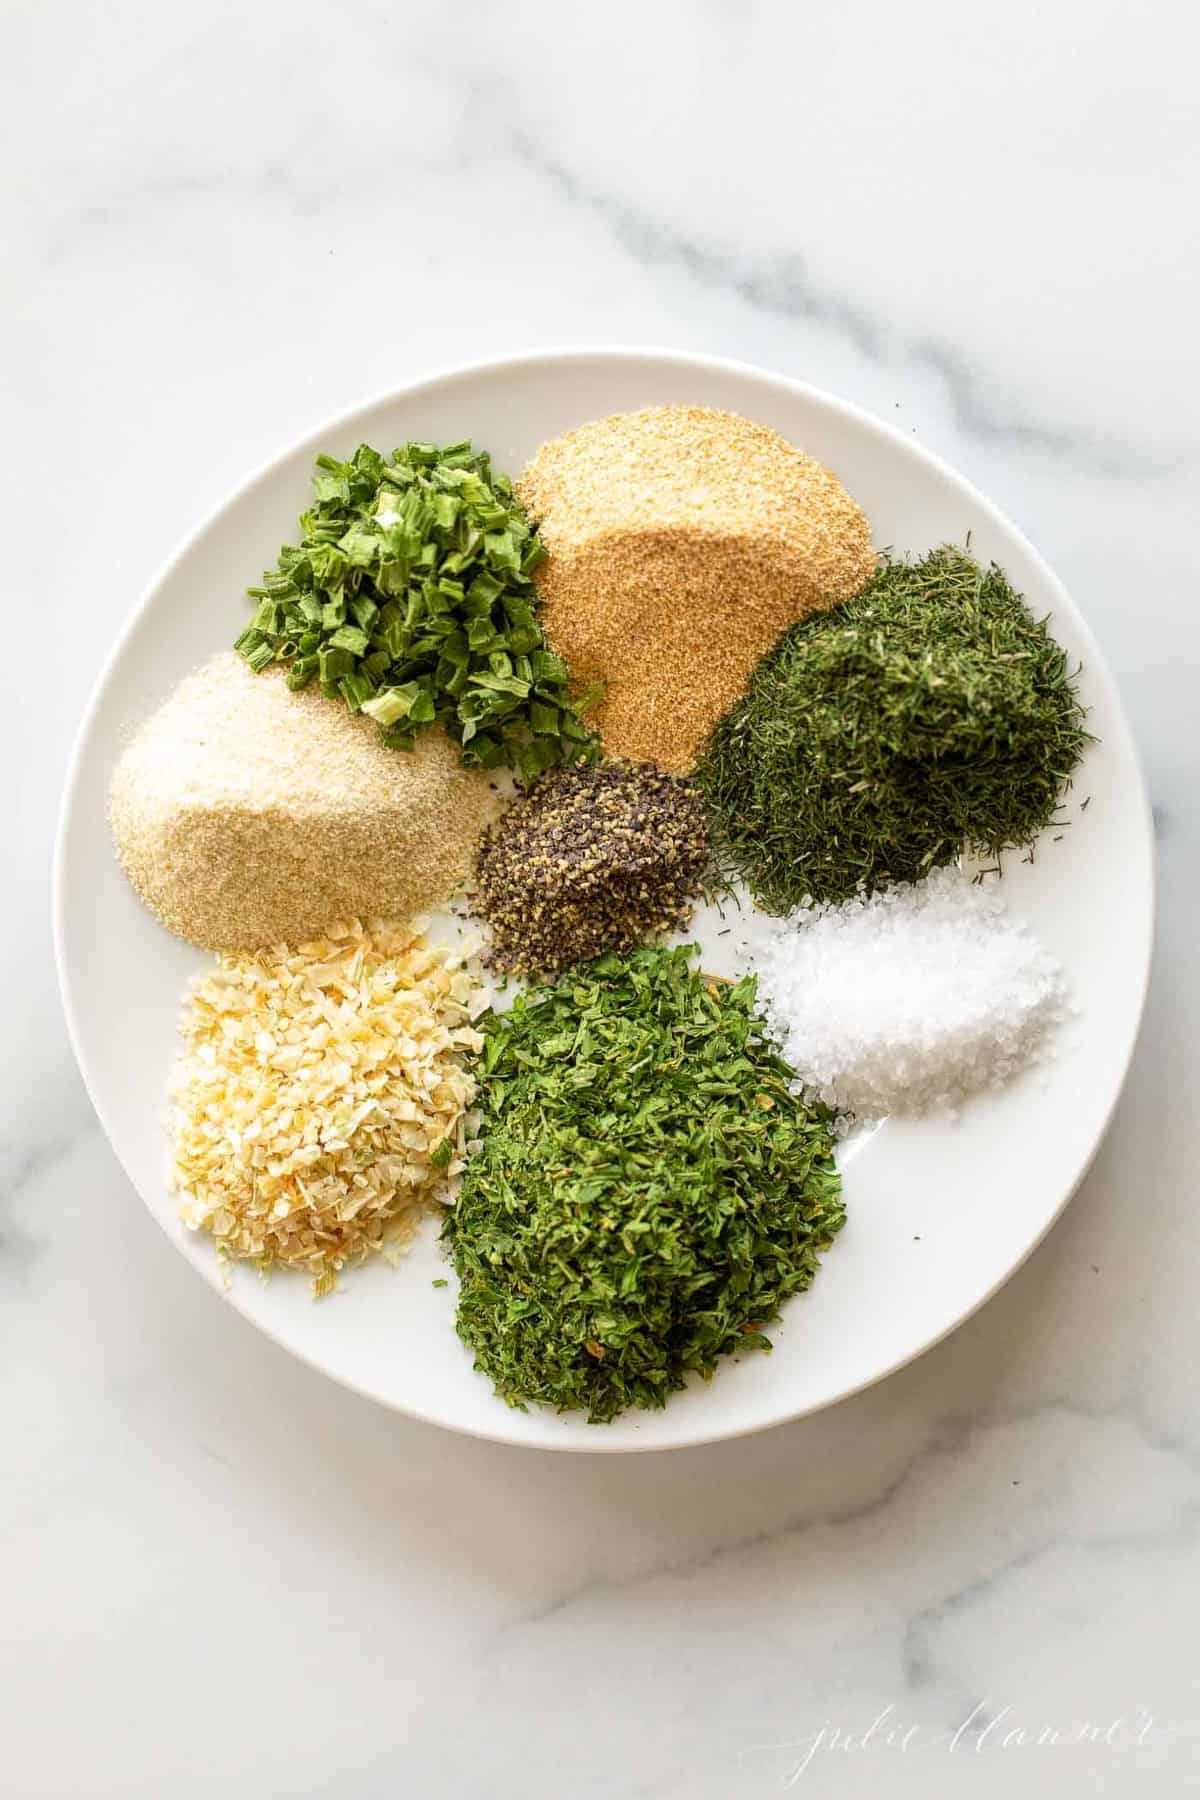 spices and herbs on a white plate on marble background